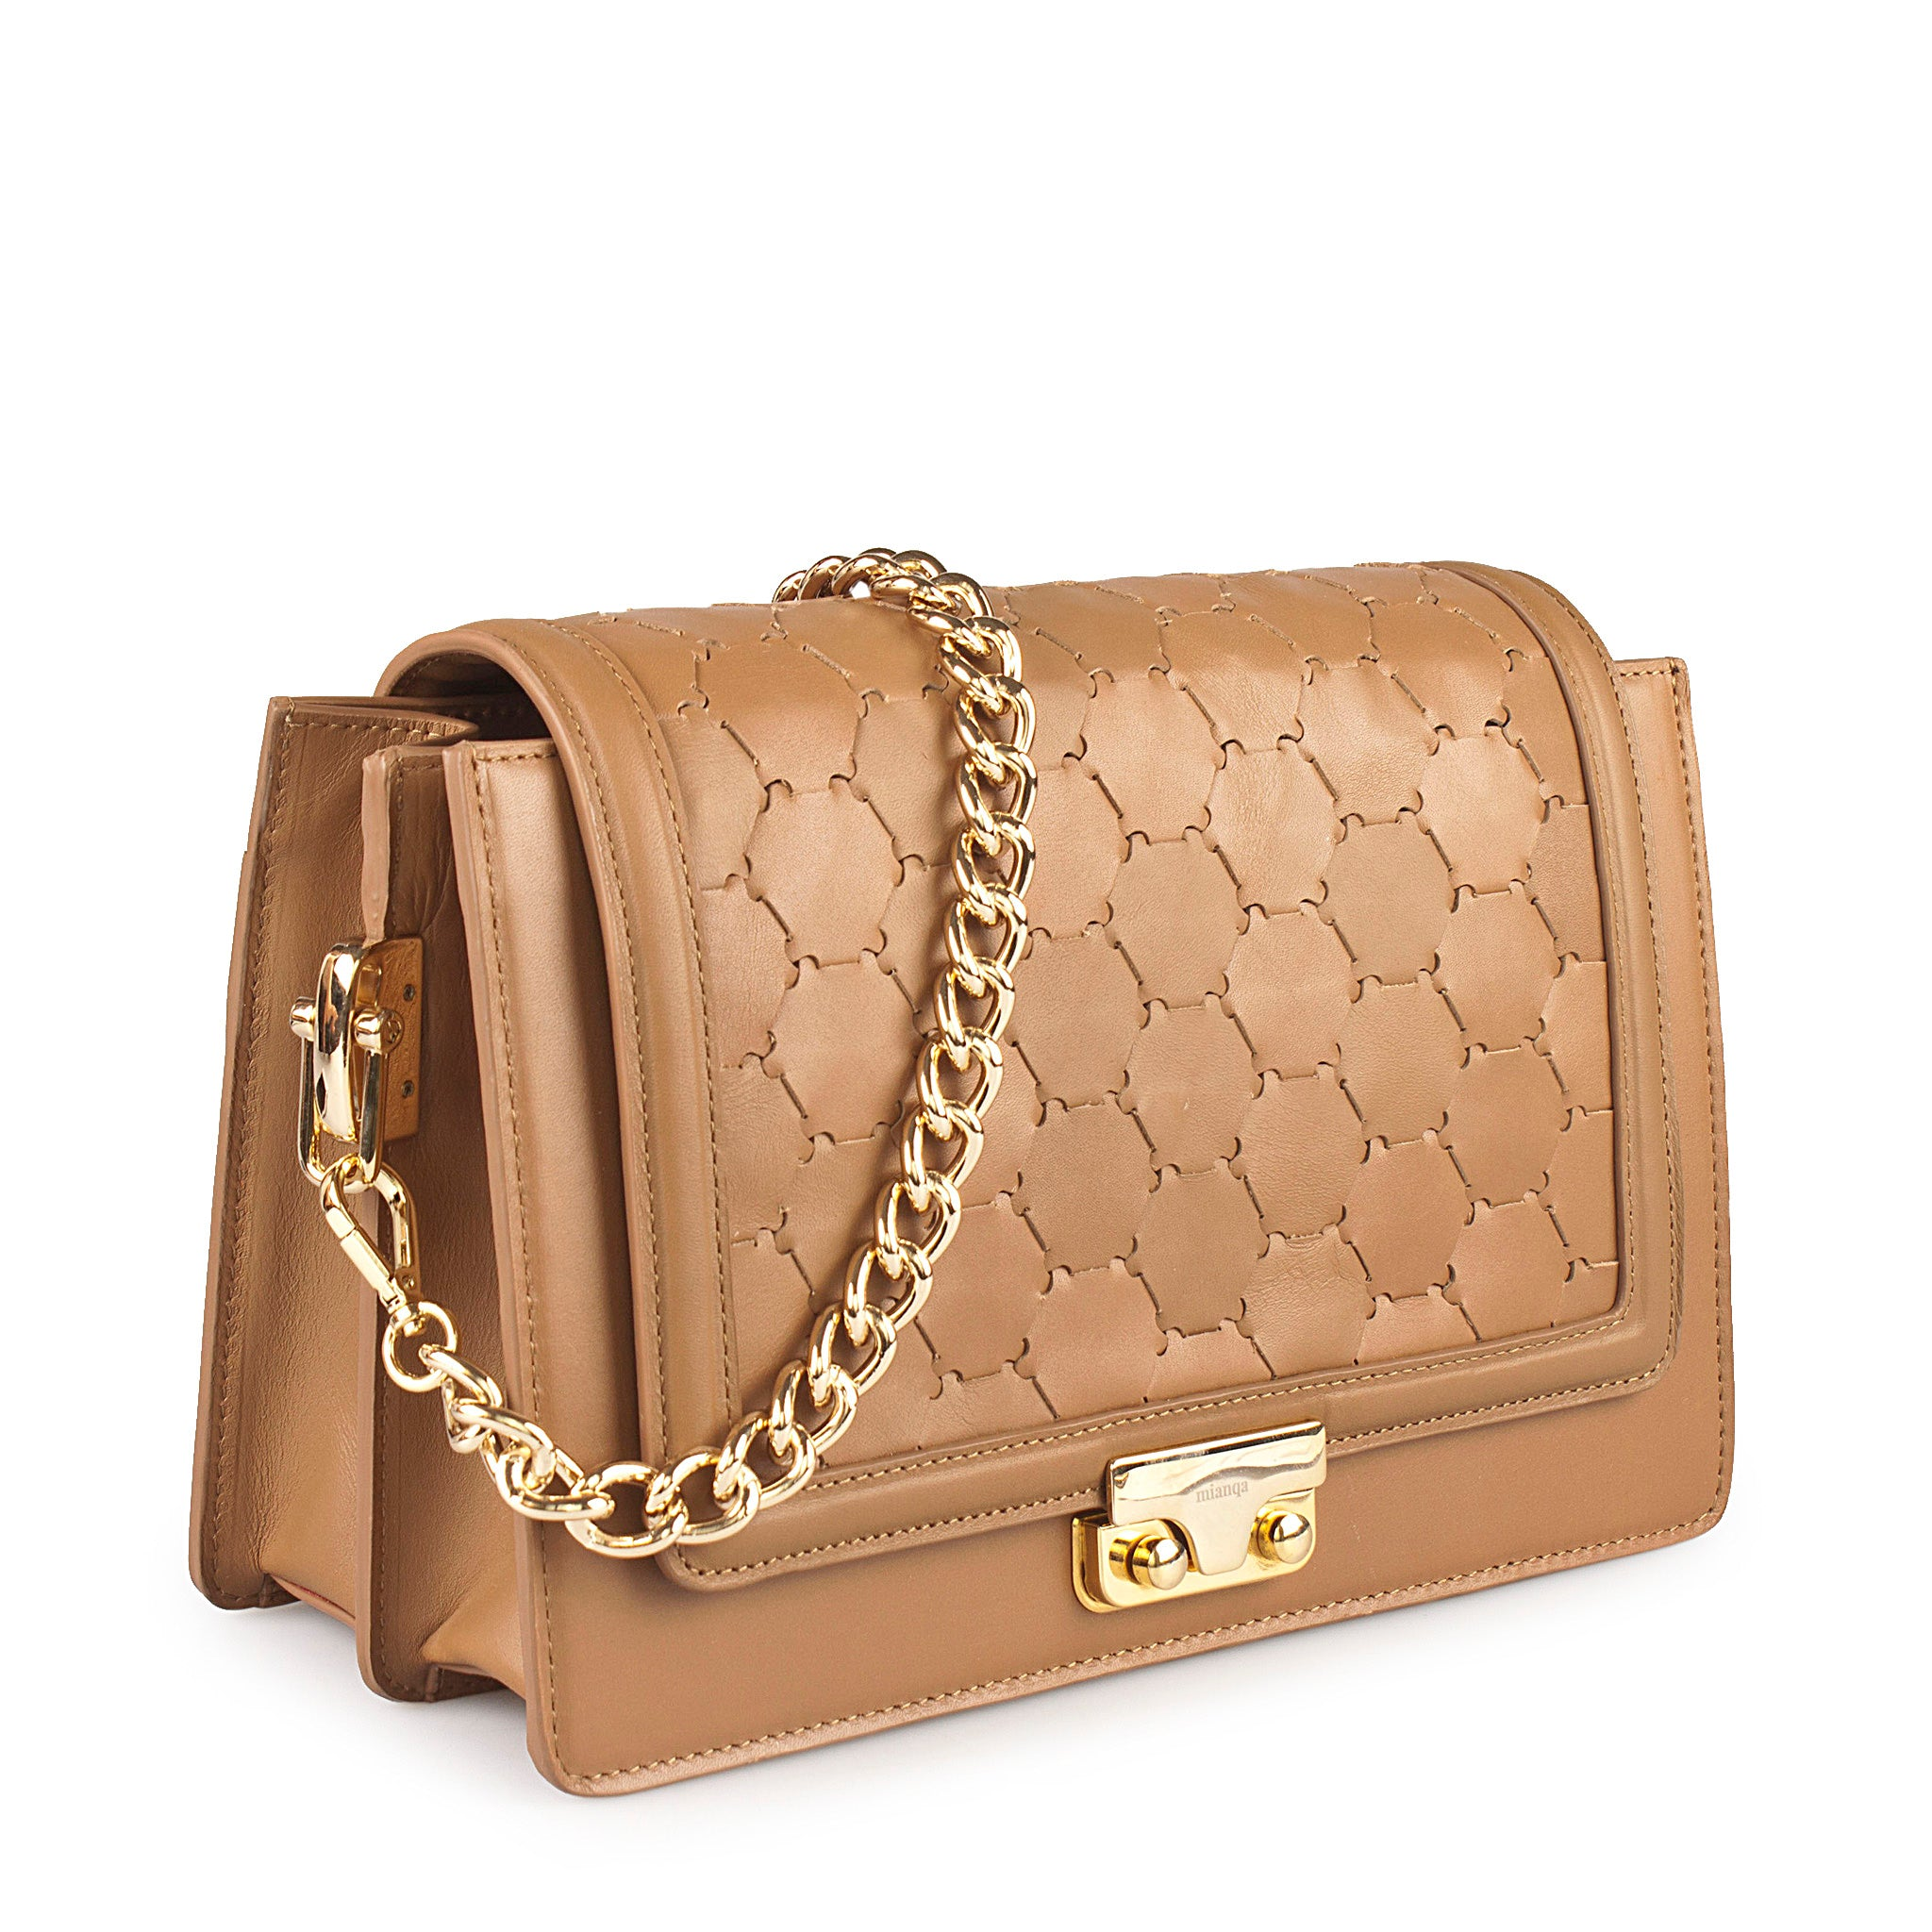 luxury leather tan crossbody bag with handwoven flap and chain handle